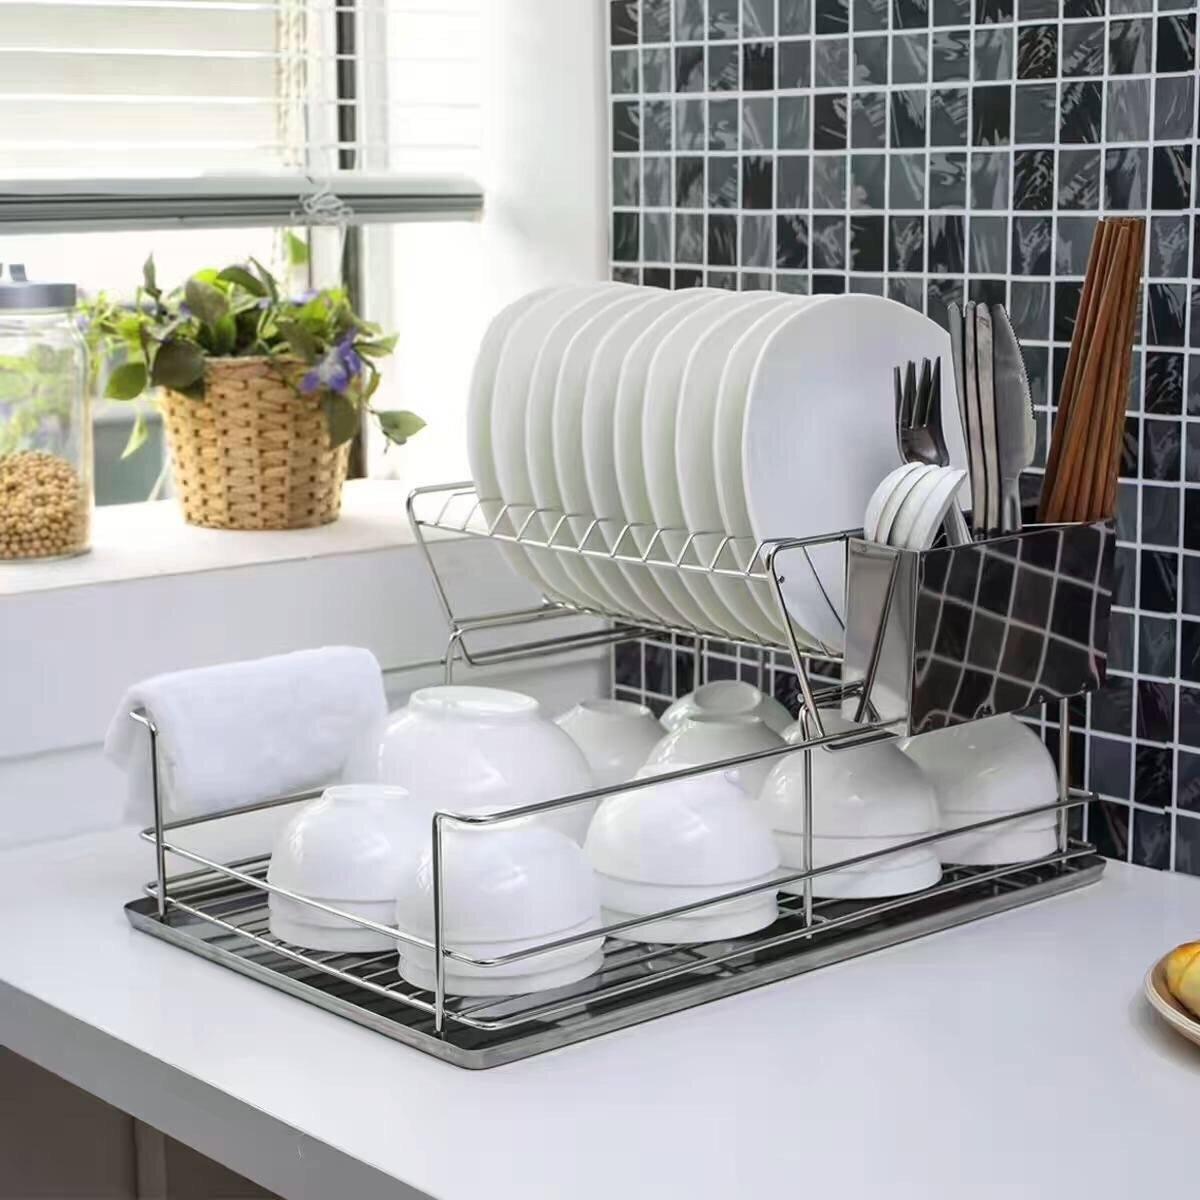 Durable stainless steel dish rack nz